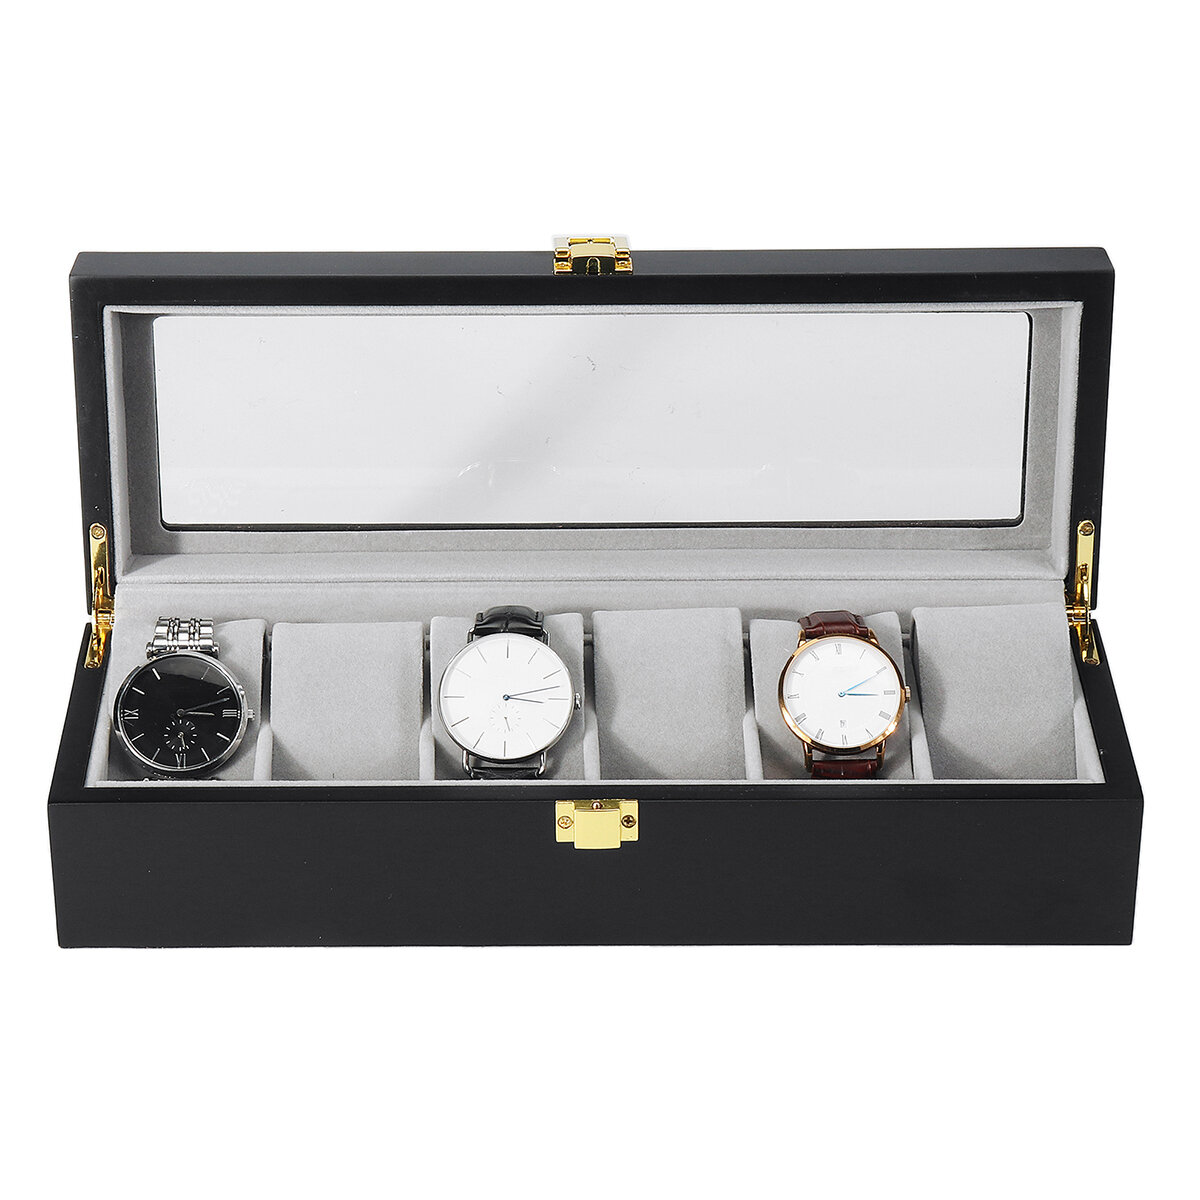 8 Slots PU Leather Lock Watch Storage Box with Mirror - 5